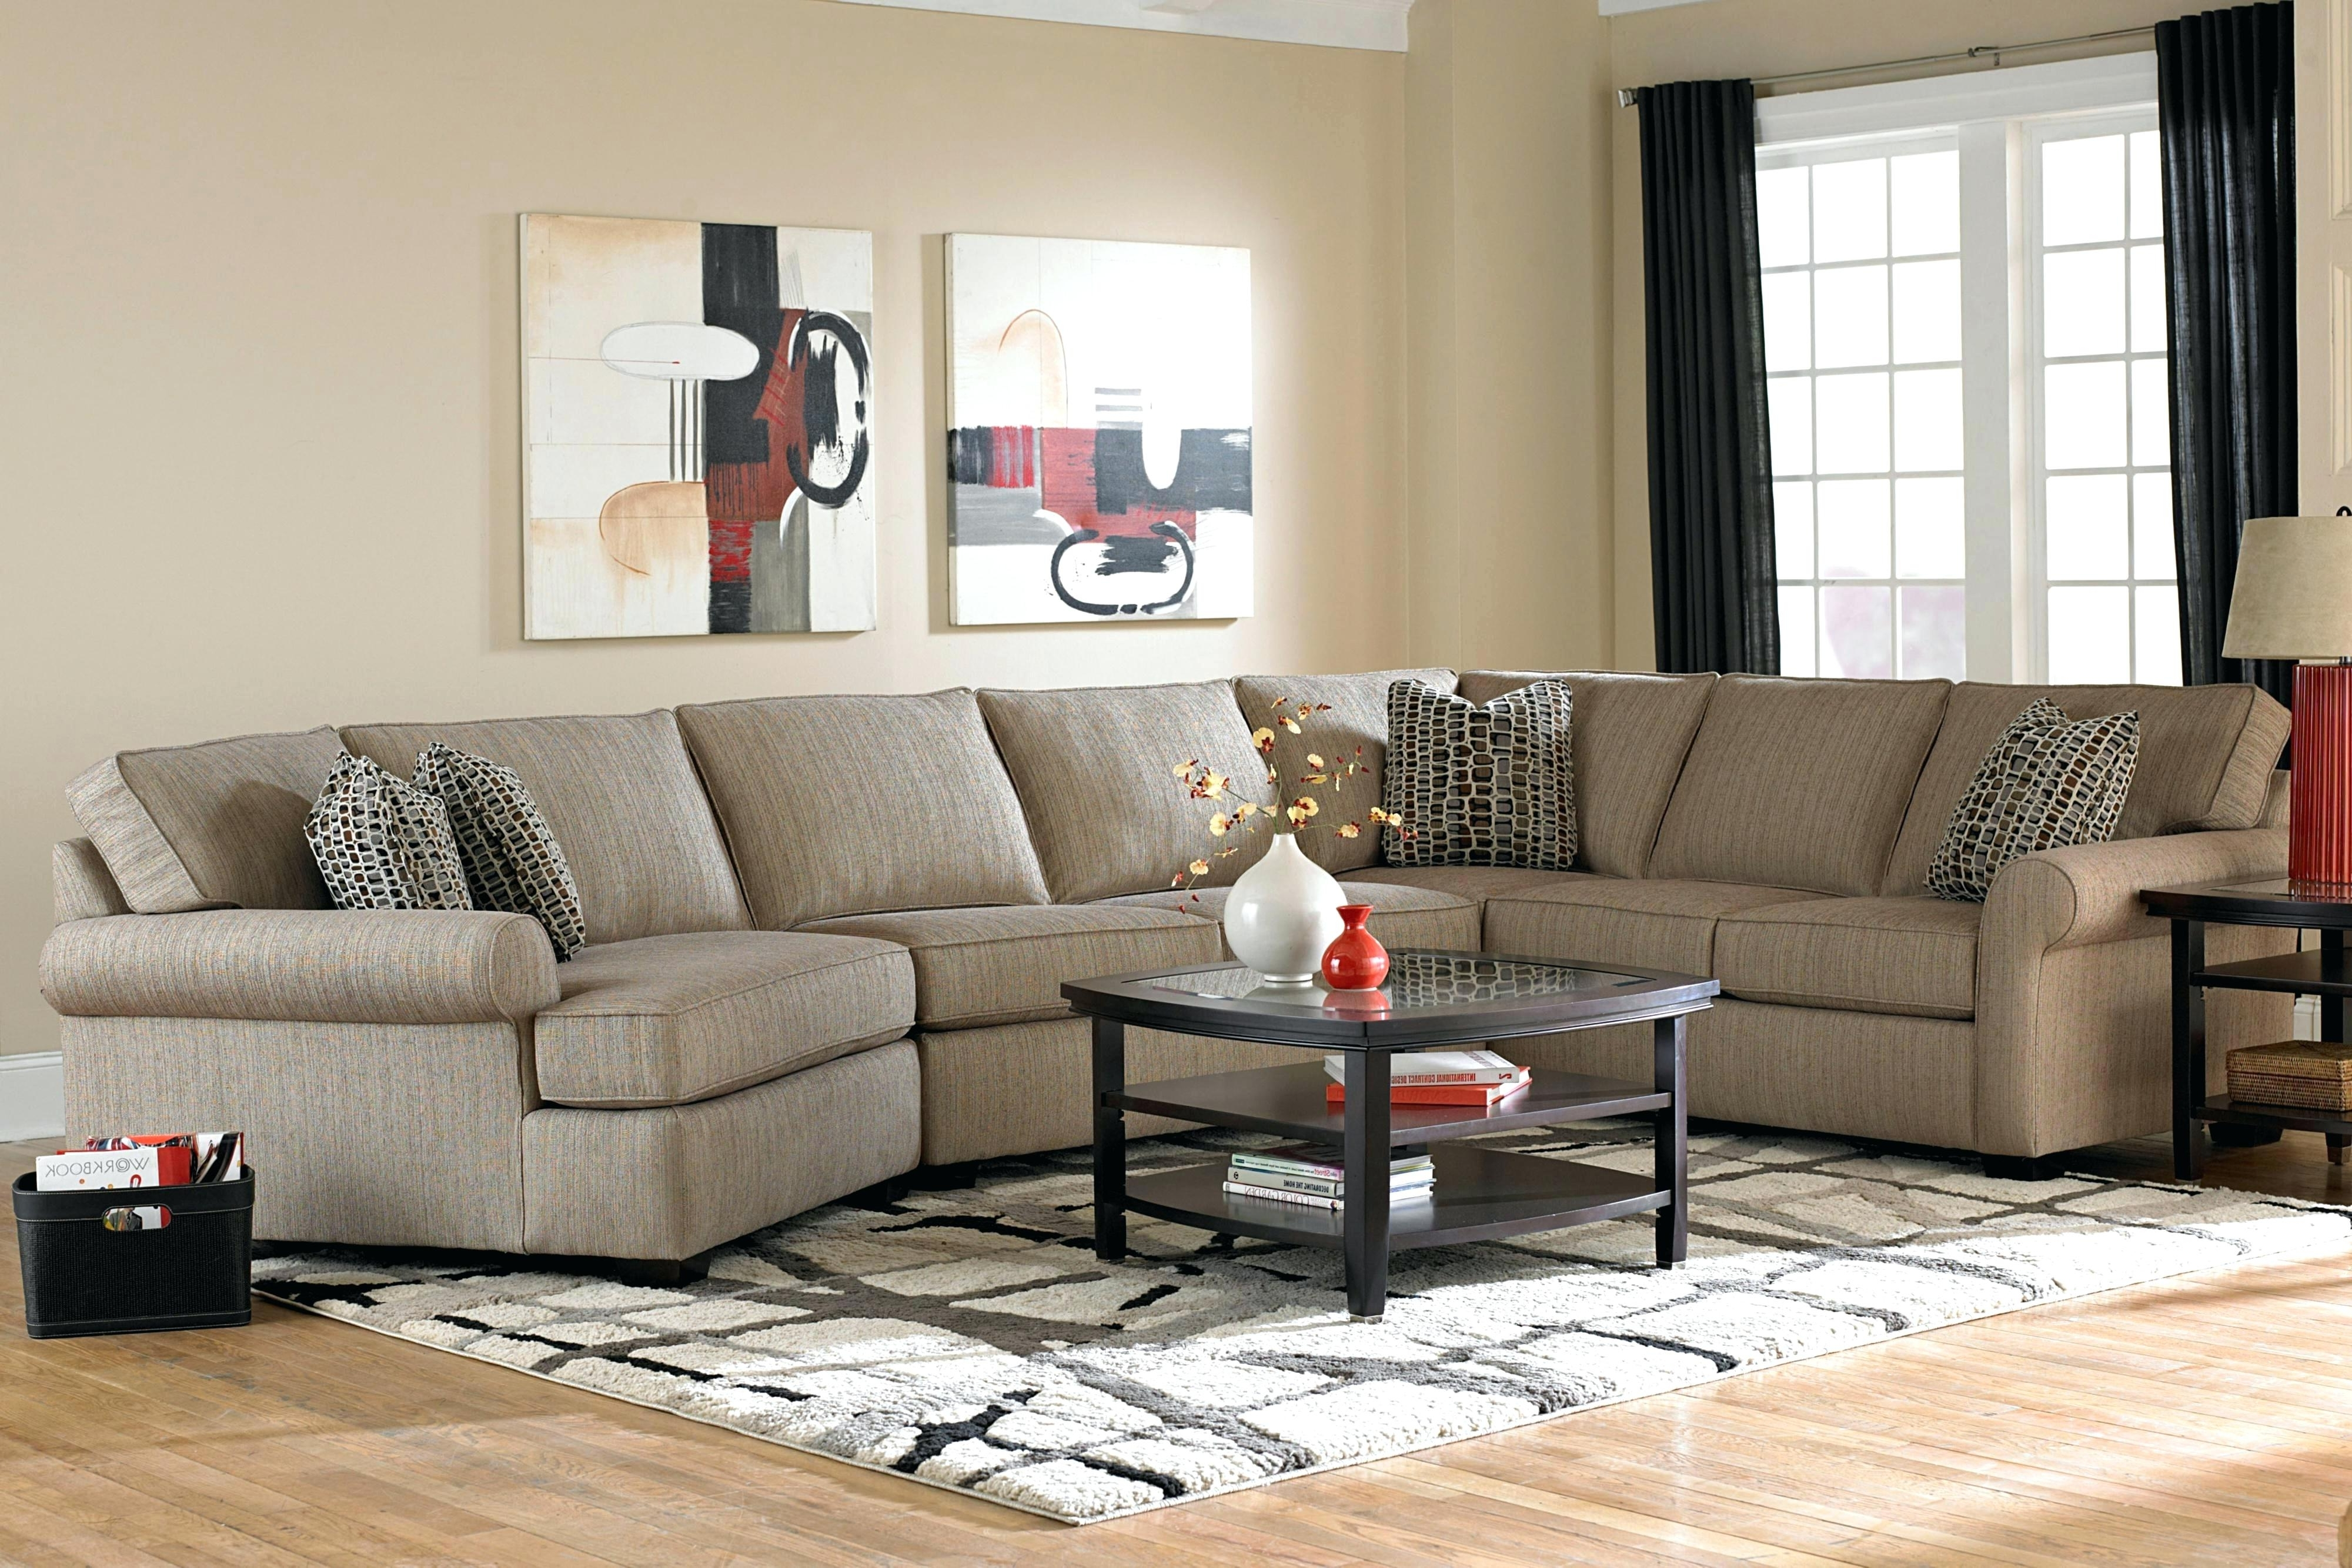 Fashionable Sofa : Sectional Sofa Sales Near Me Sale Spring Hill Florida For Michigan Sectional Sofas (View 6 of 20)